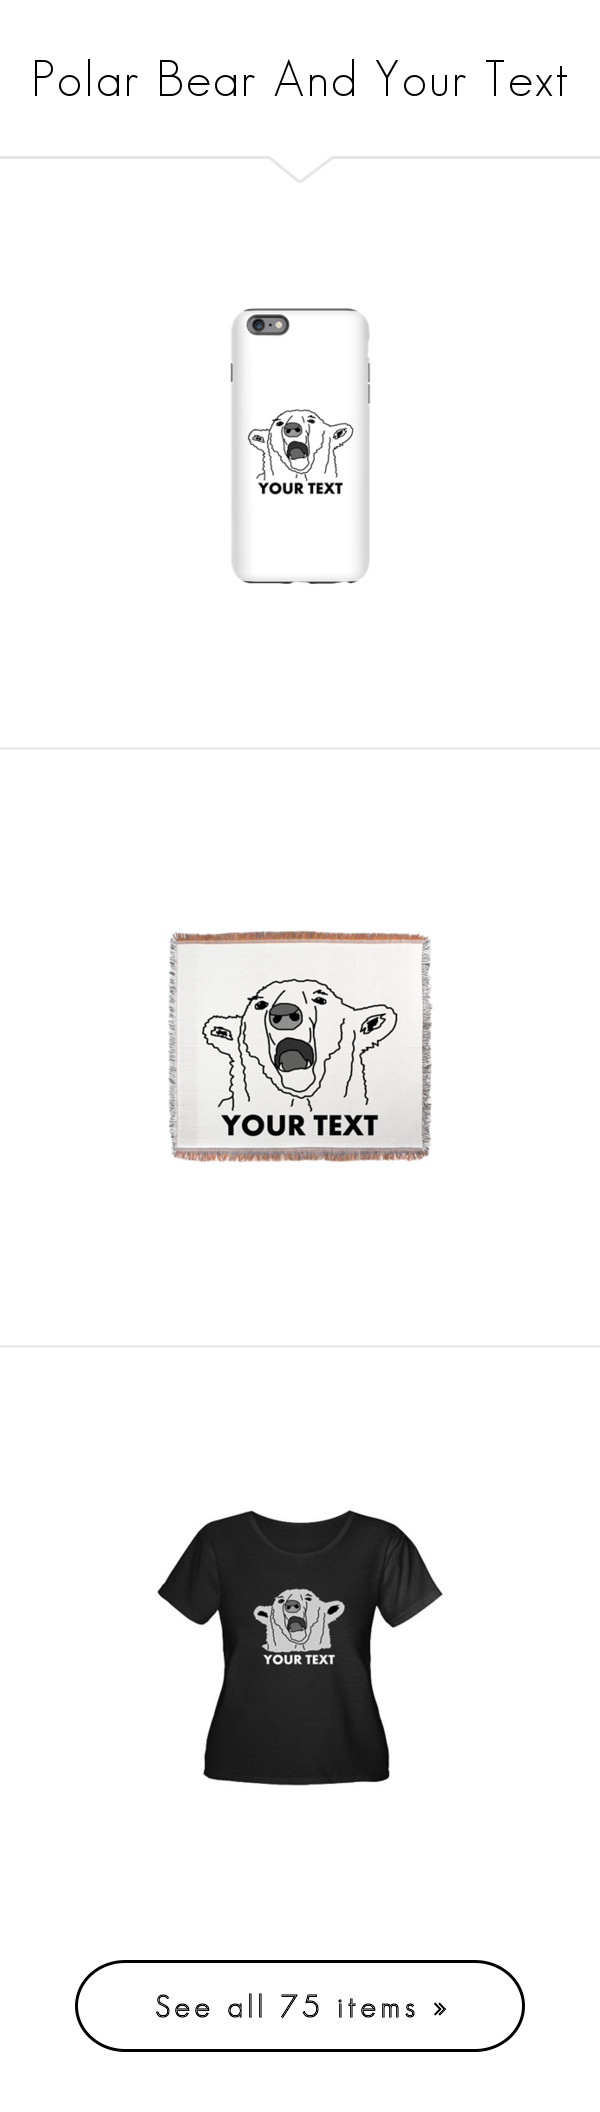 """""""Polar Bear And Your Text"""" by polyart-466 ❤ liked on Polyvore featuring accessories, tech accessories, tops, t-shirts, bear tee, women plus size tops, plus size print tops, plus size tops, pattern tees and home"""